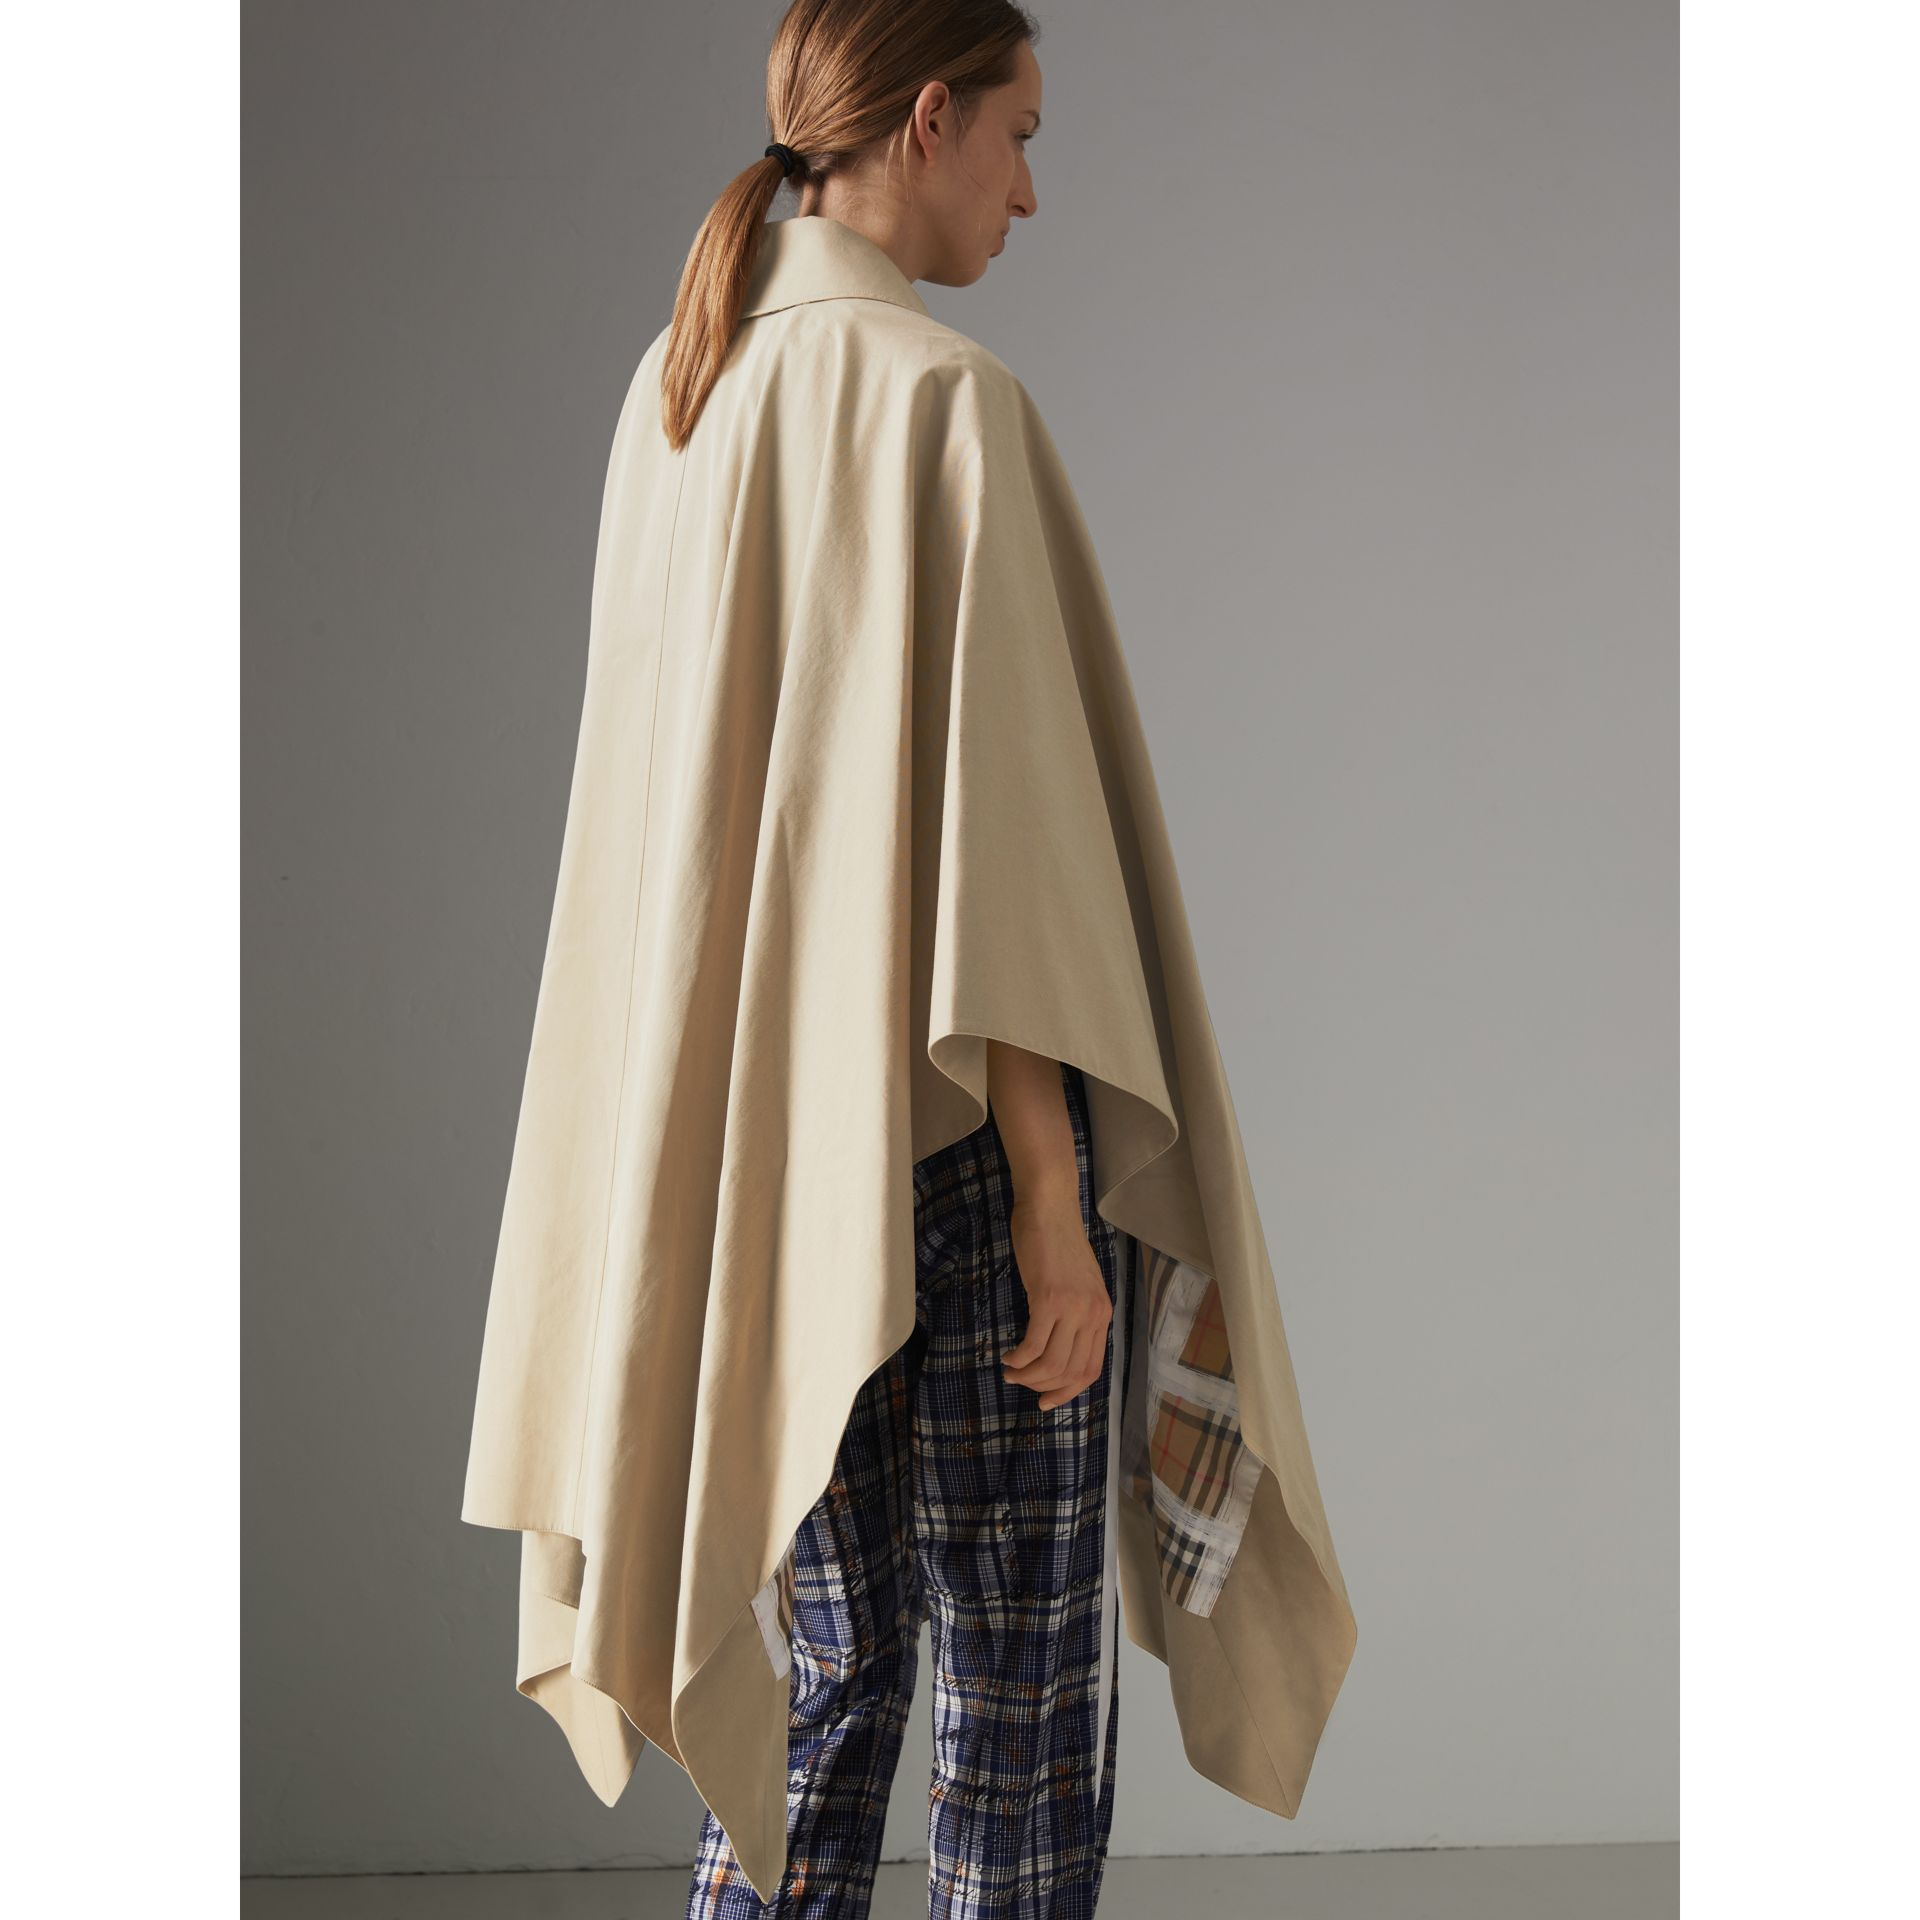 Tropical Gabardine Asymmetric Cape in Oatmeal - Women | Burberry United States - gallery image 2